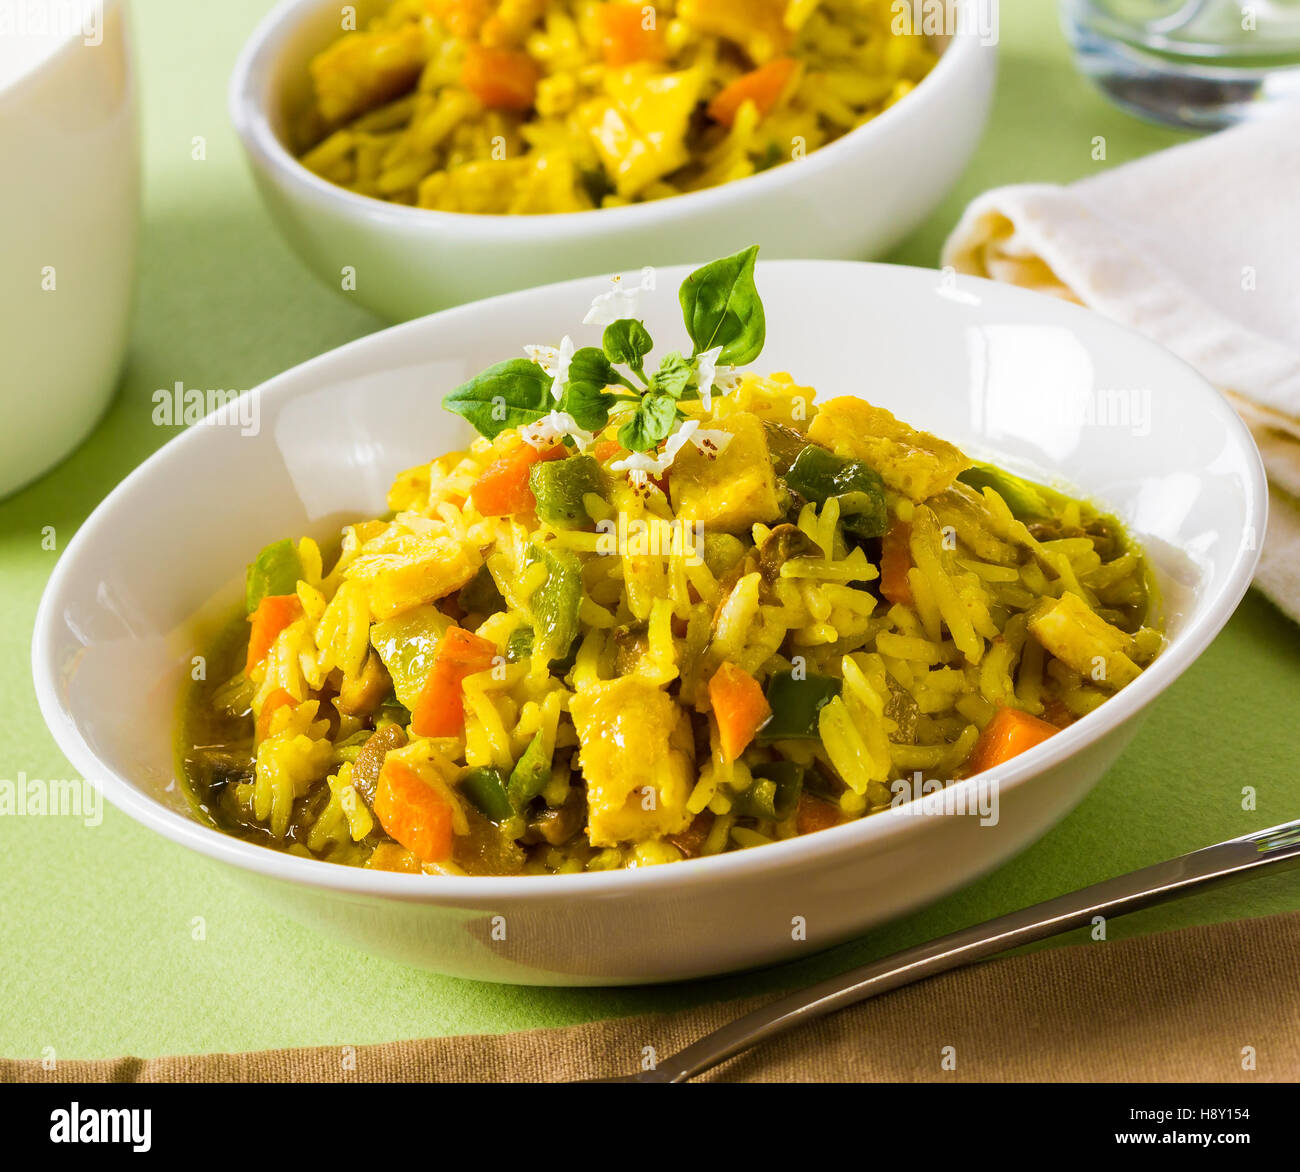 Curry rice with vegetables in a white bowl. - Stock Image